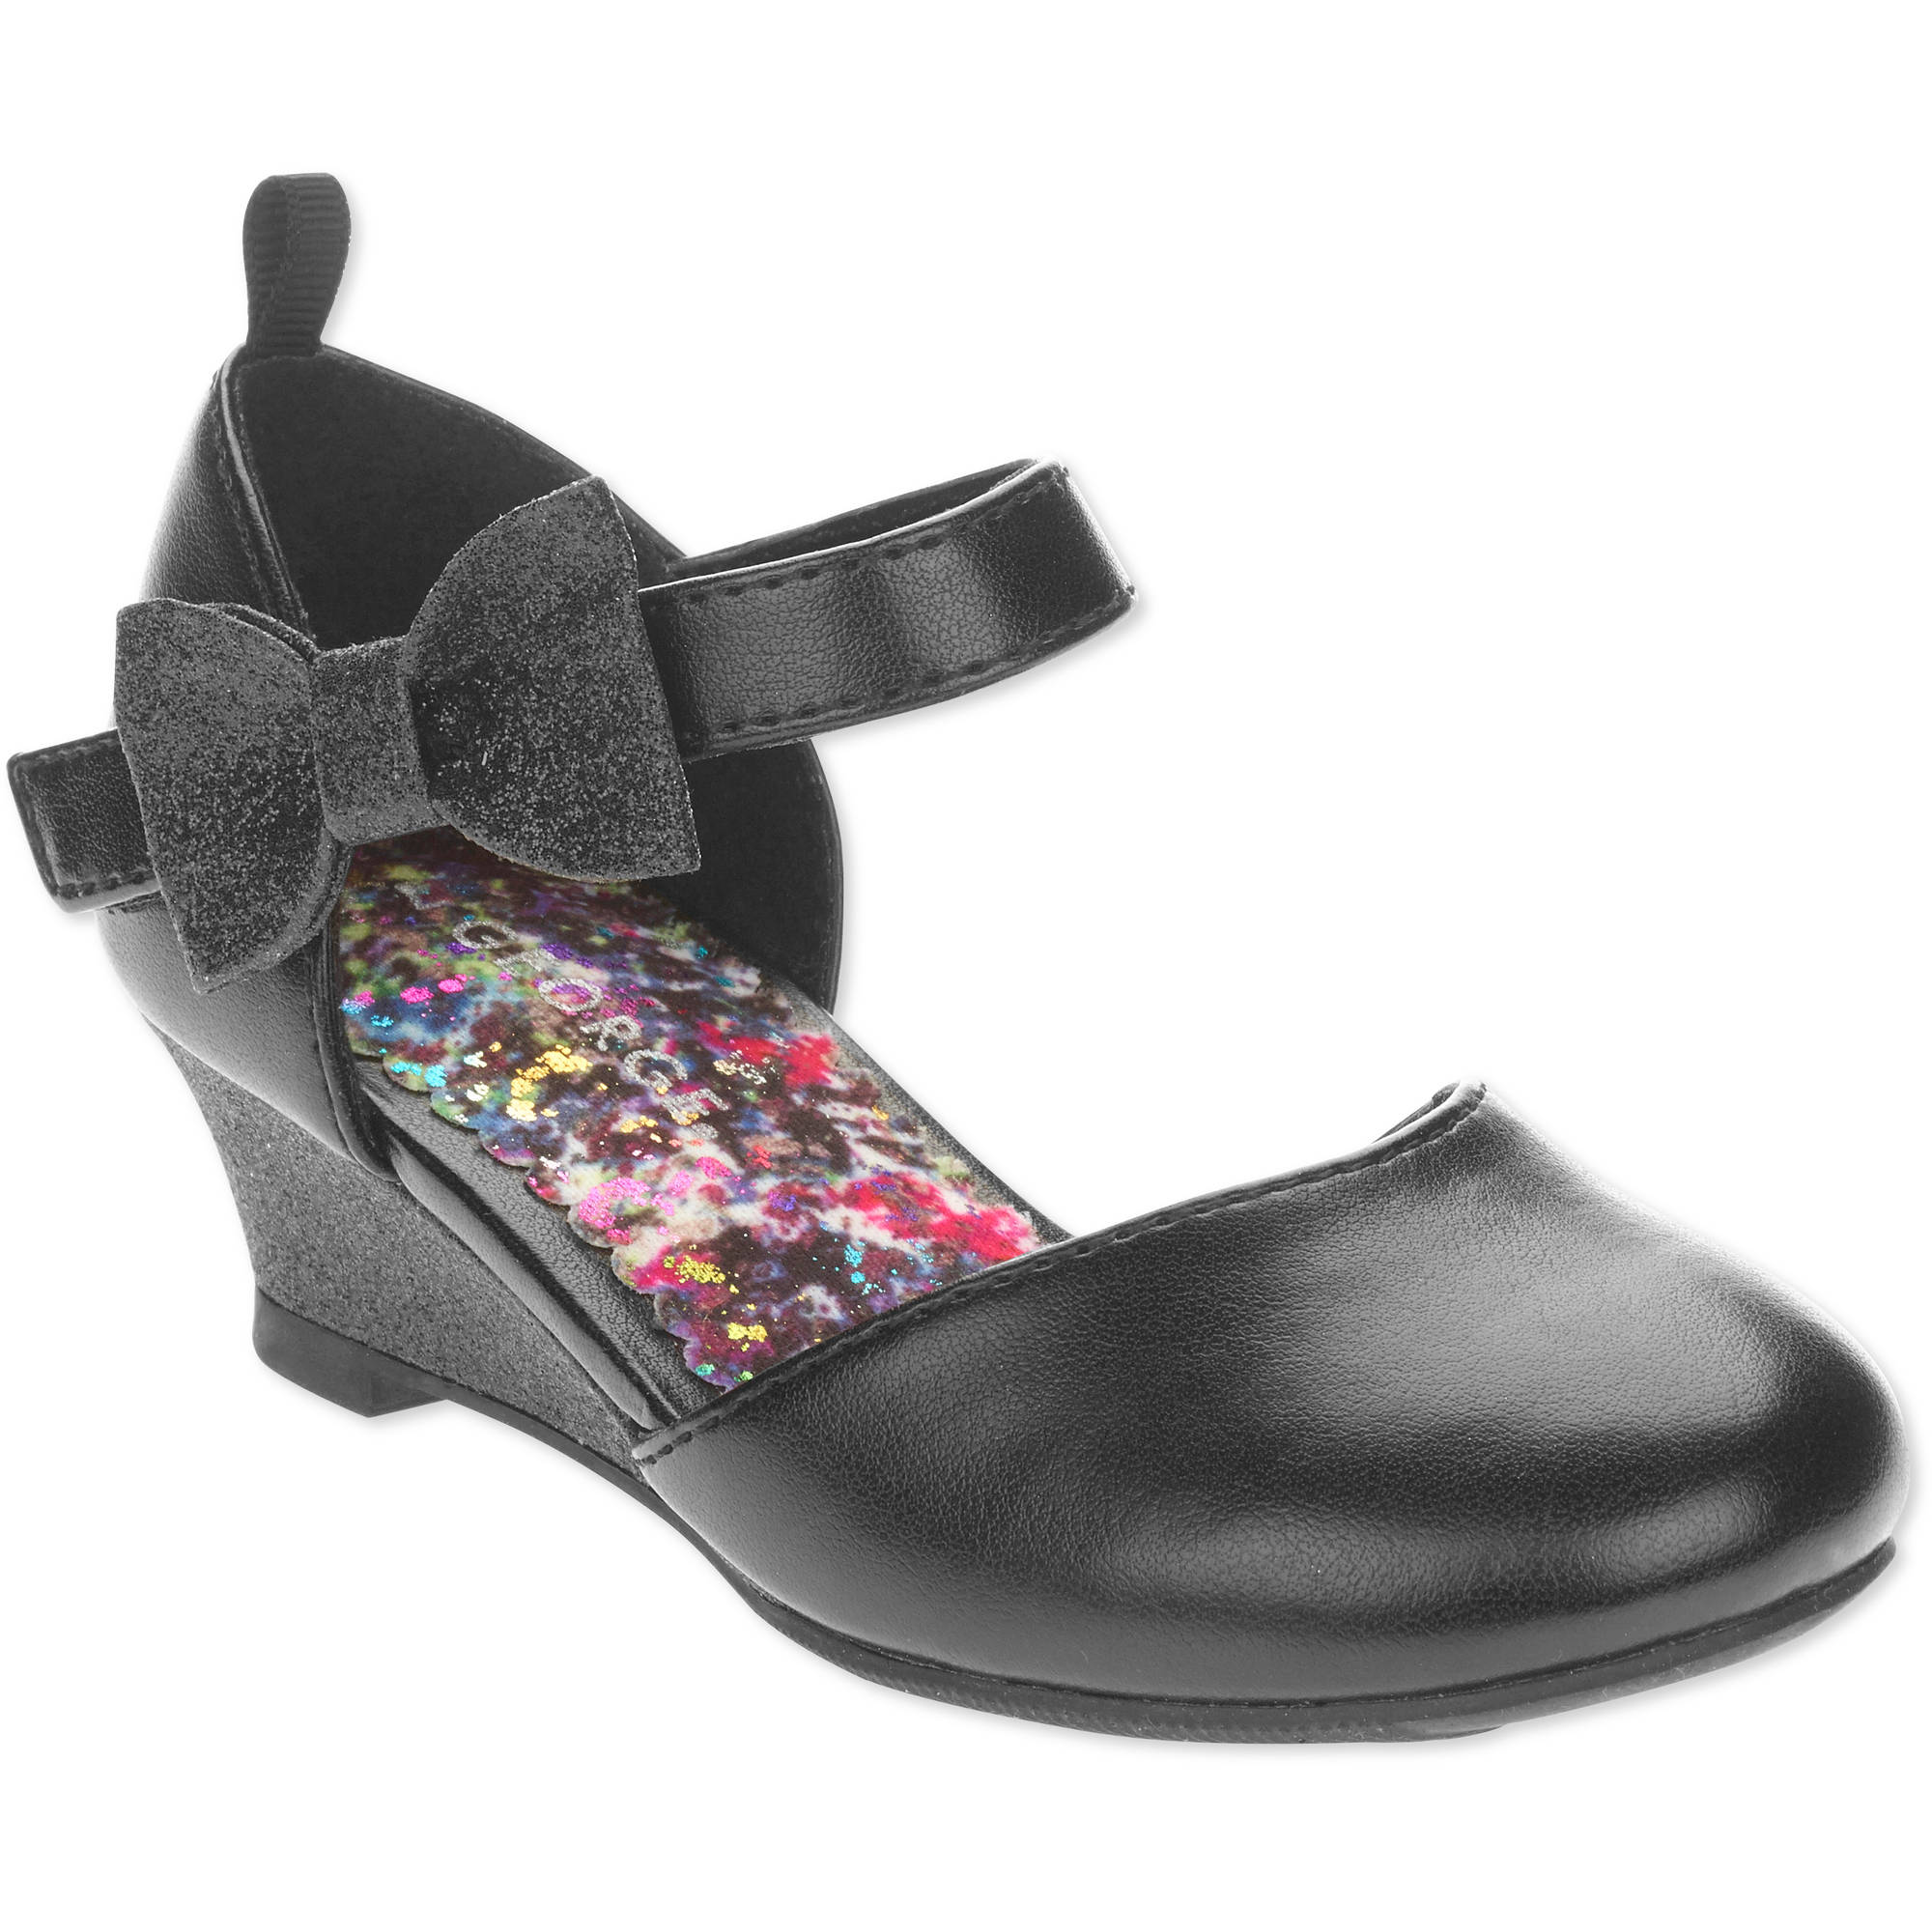 GEORGE - Toddler Girl's Wedge Dress